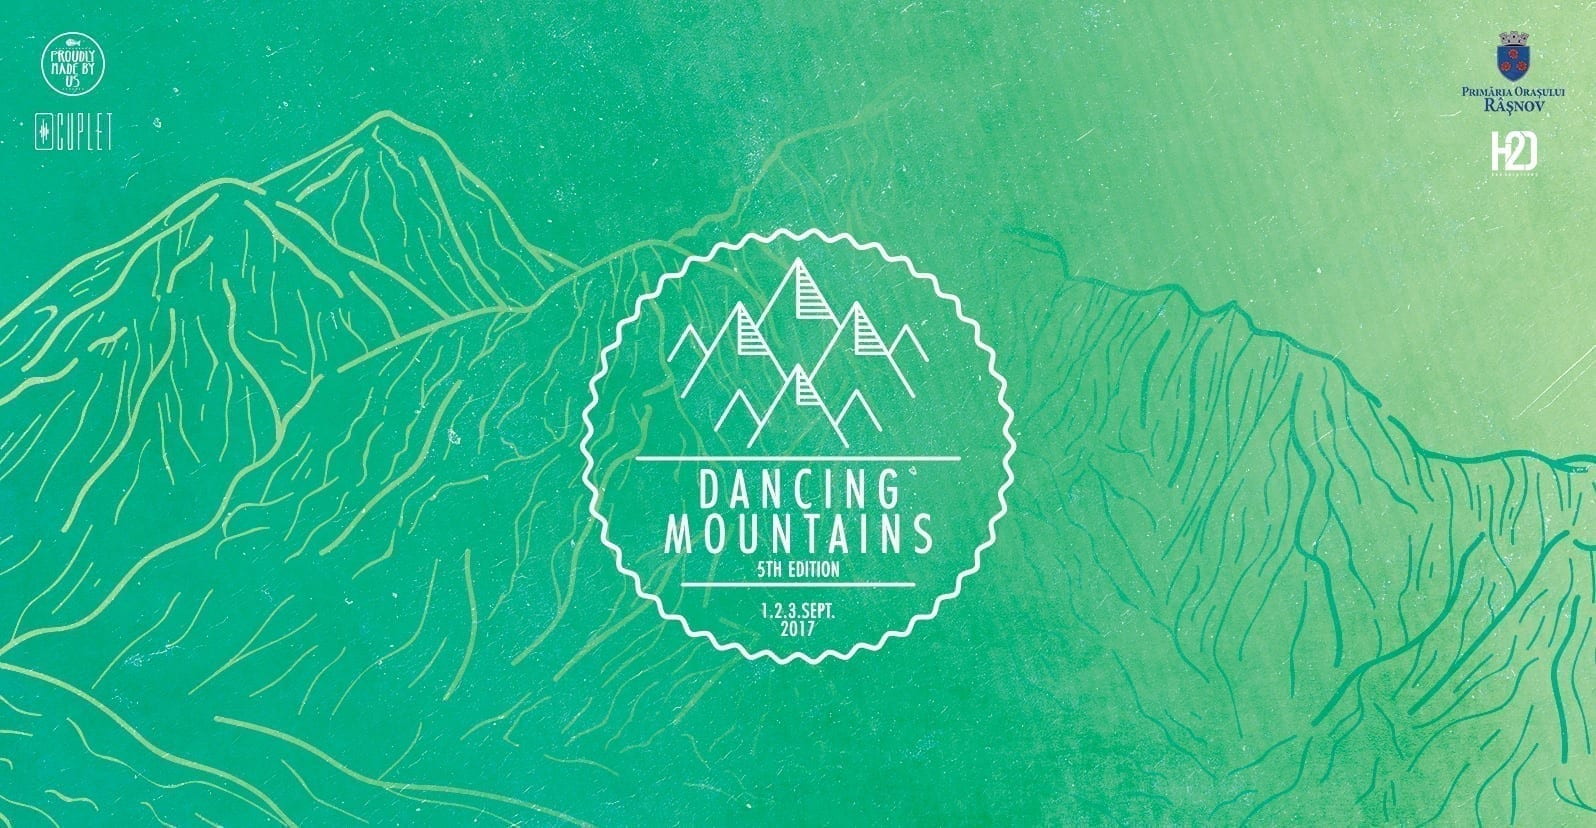 Dancing Mountains 2017